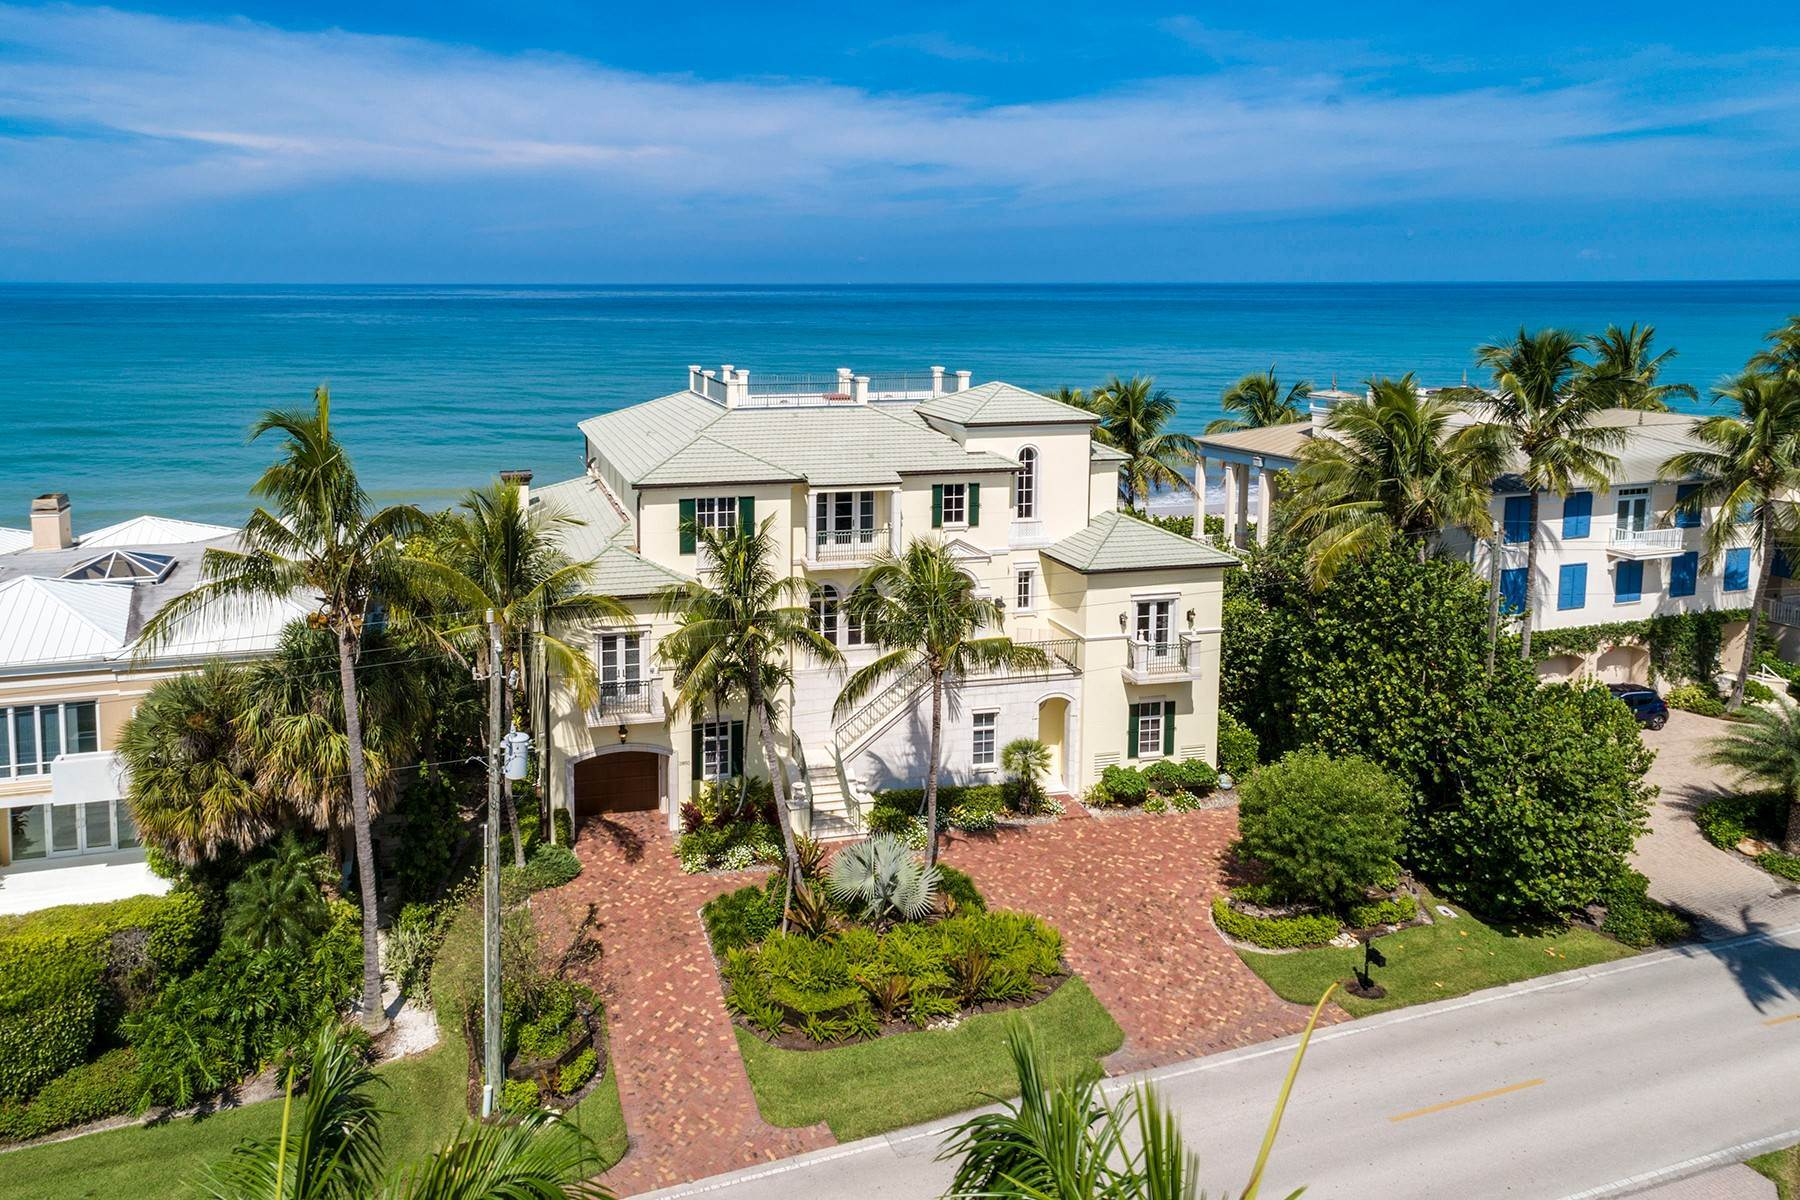 Single Family Homes for Sale at PORT ROYAL 3850 Gordon Drive Naples, Florida 34102 United States